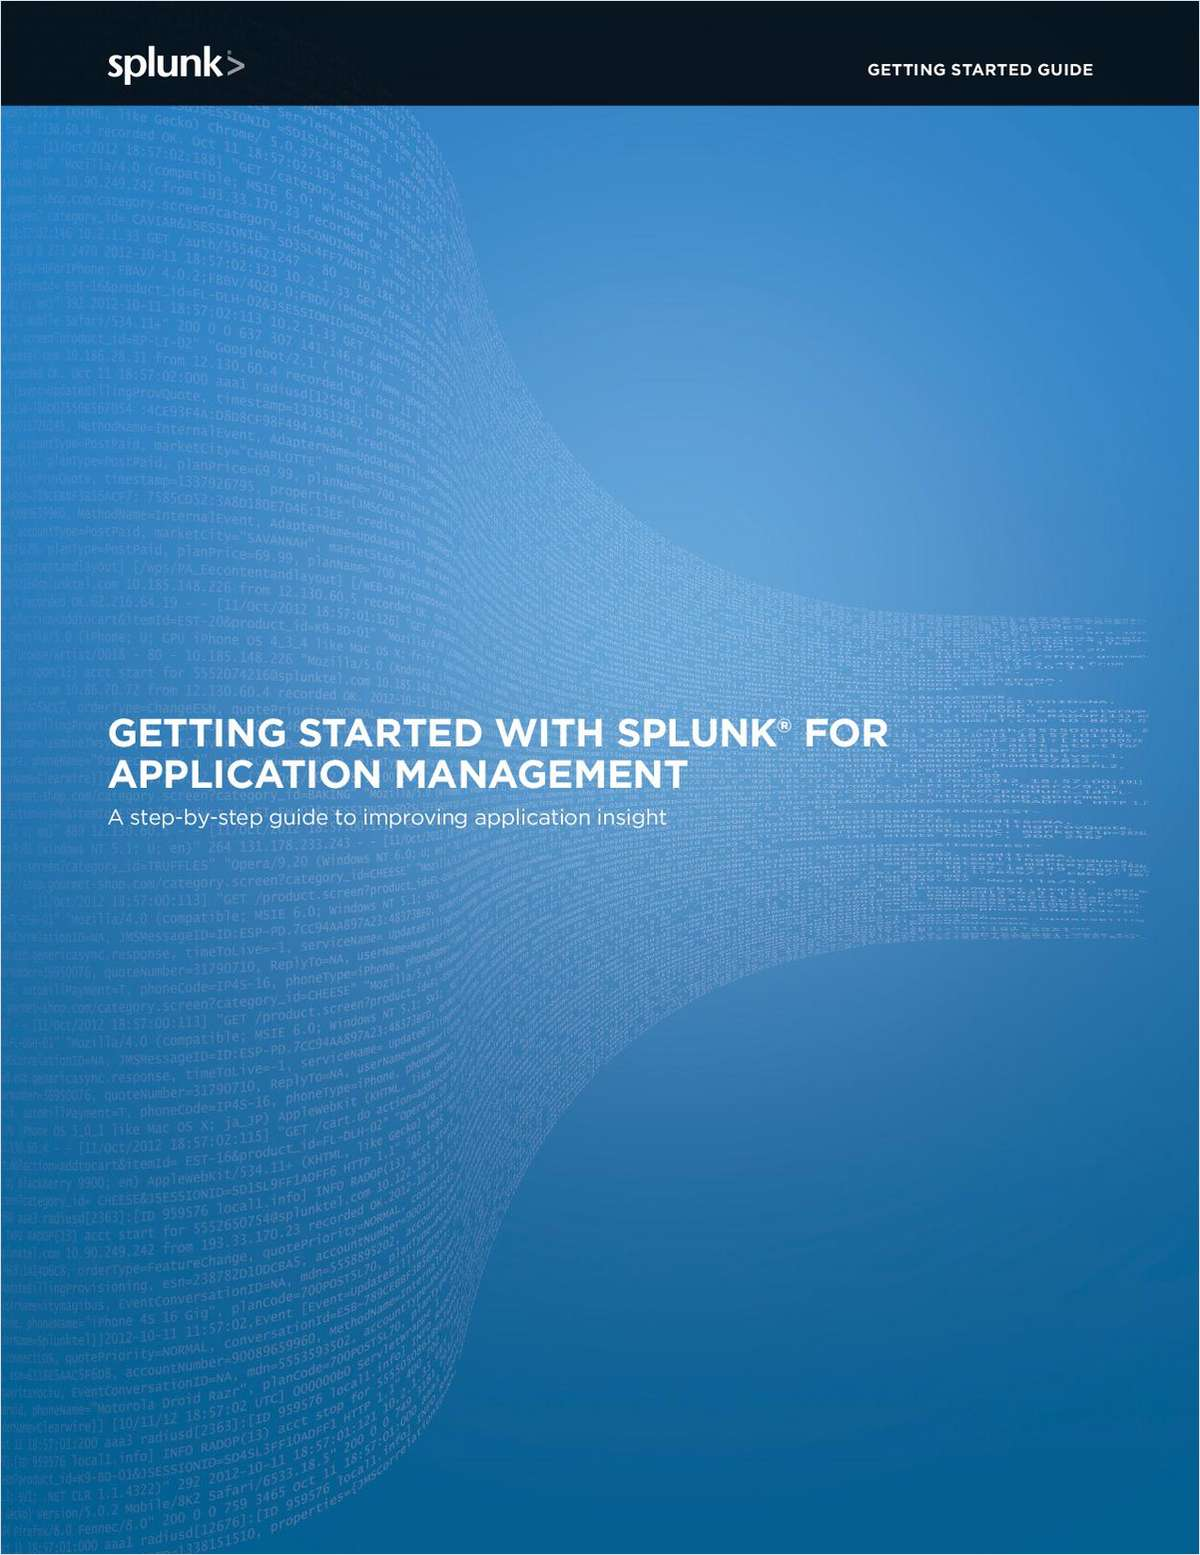 Getting Started with Splunk for Application Management